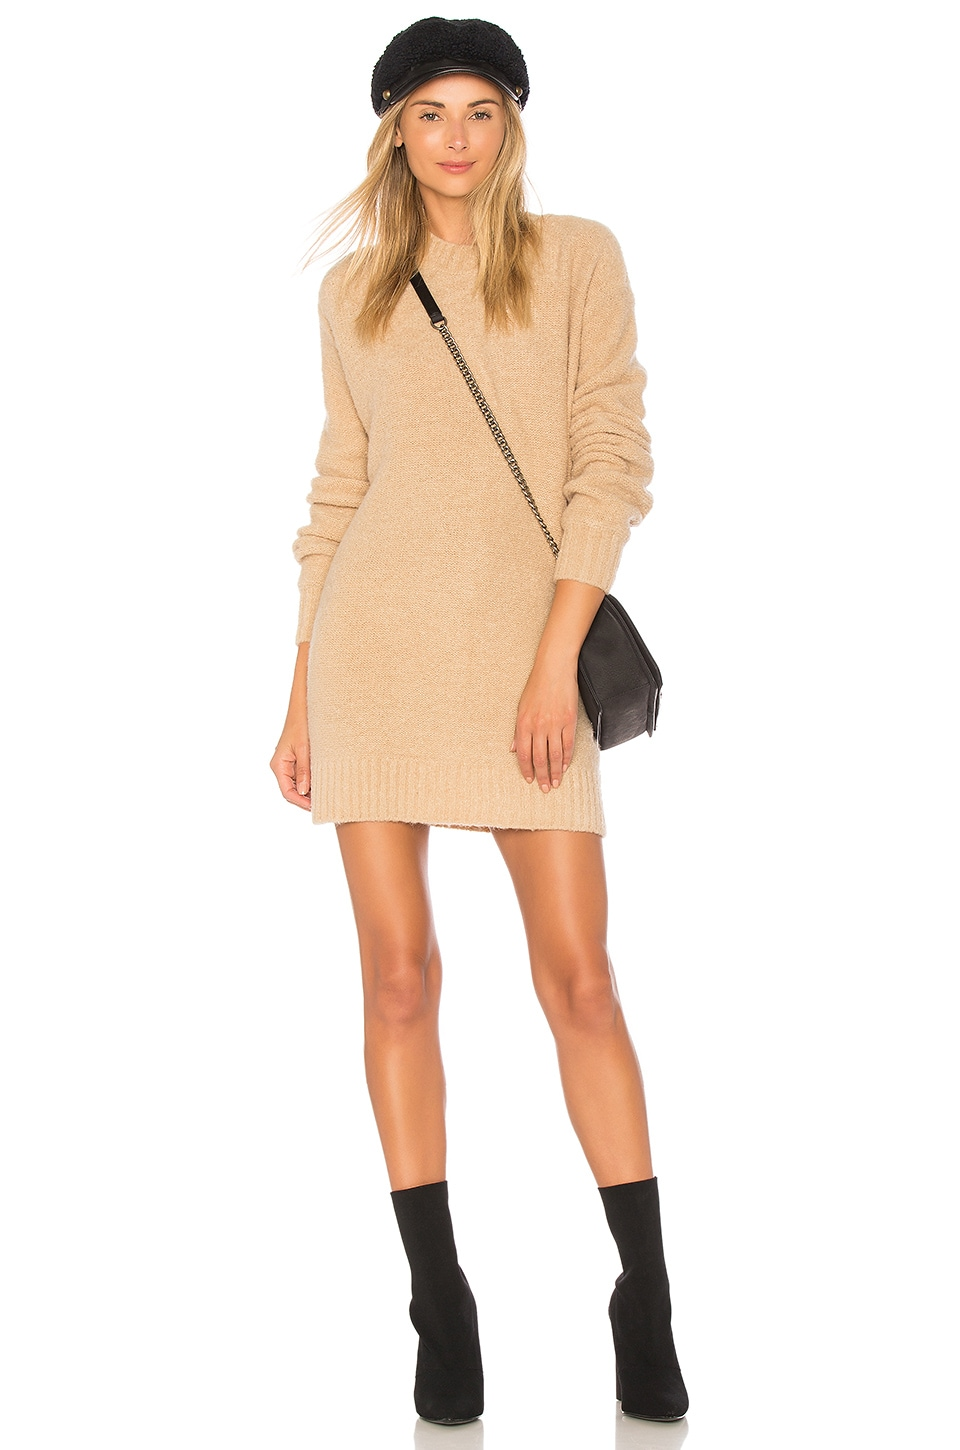 Lovers + Friends Suki Sweater Dress in Taupe